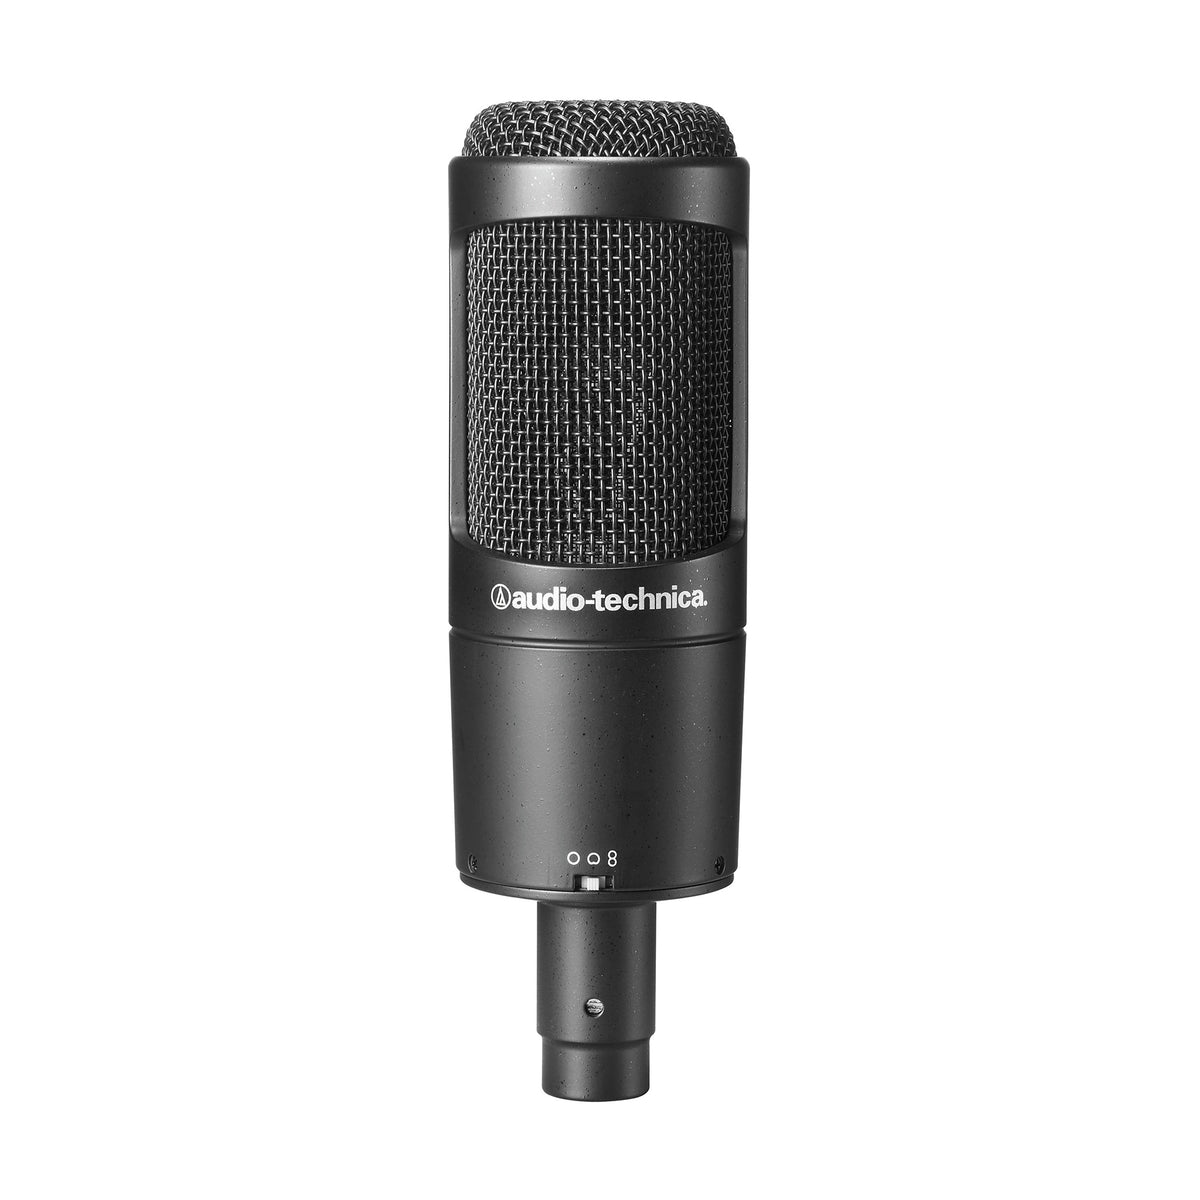 Audio-Technica: AT2050 Multi-pattern Condenser Microphone